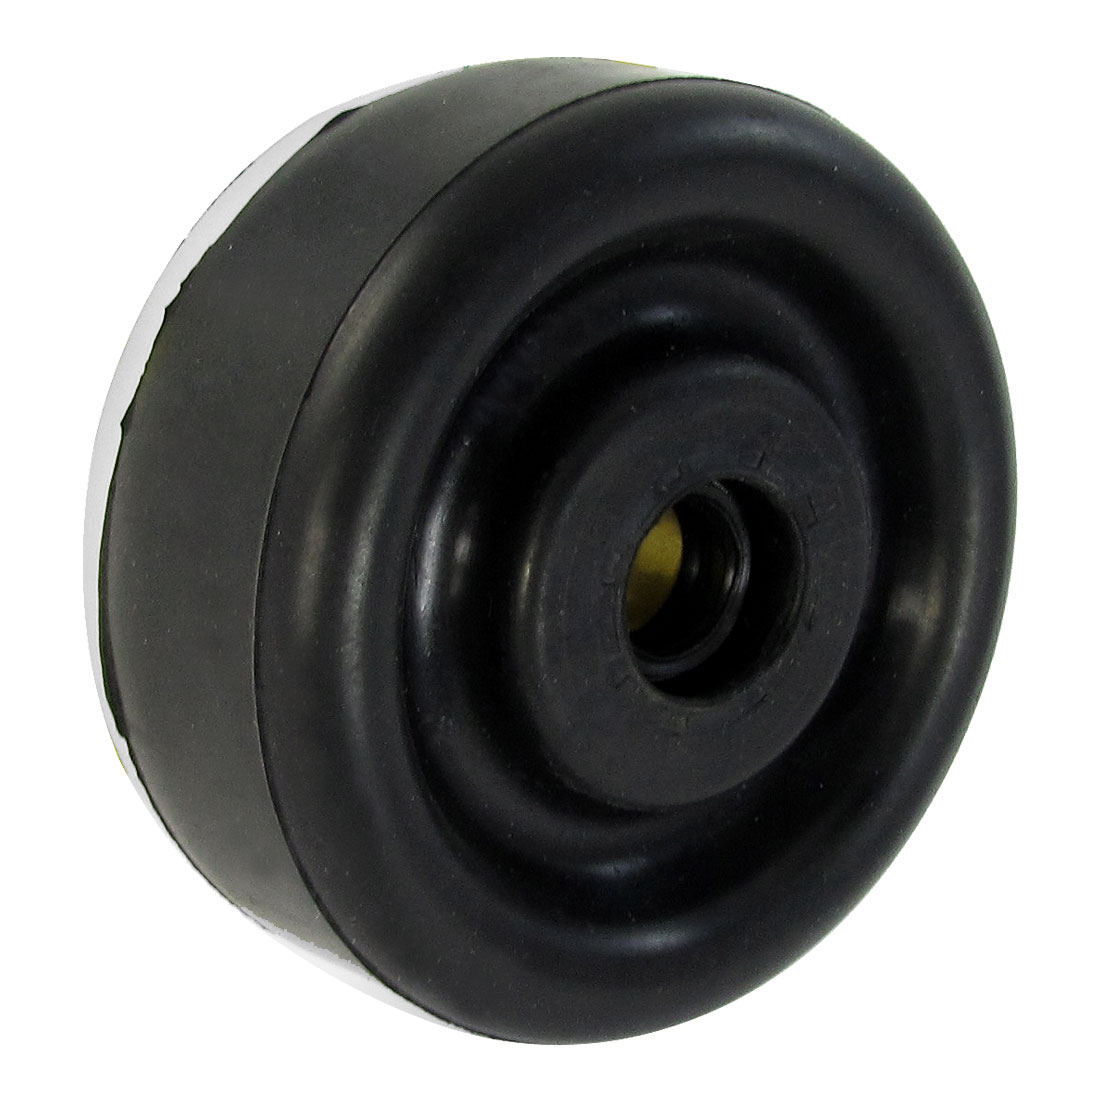 82mm Outer Dia 13mm Hole Rubber Buffe Water Seal for Washing Machine